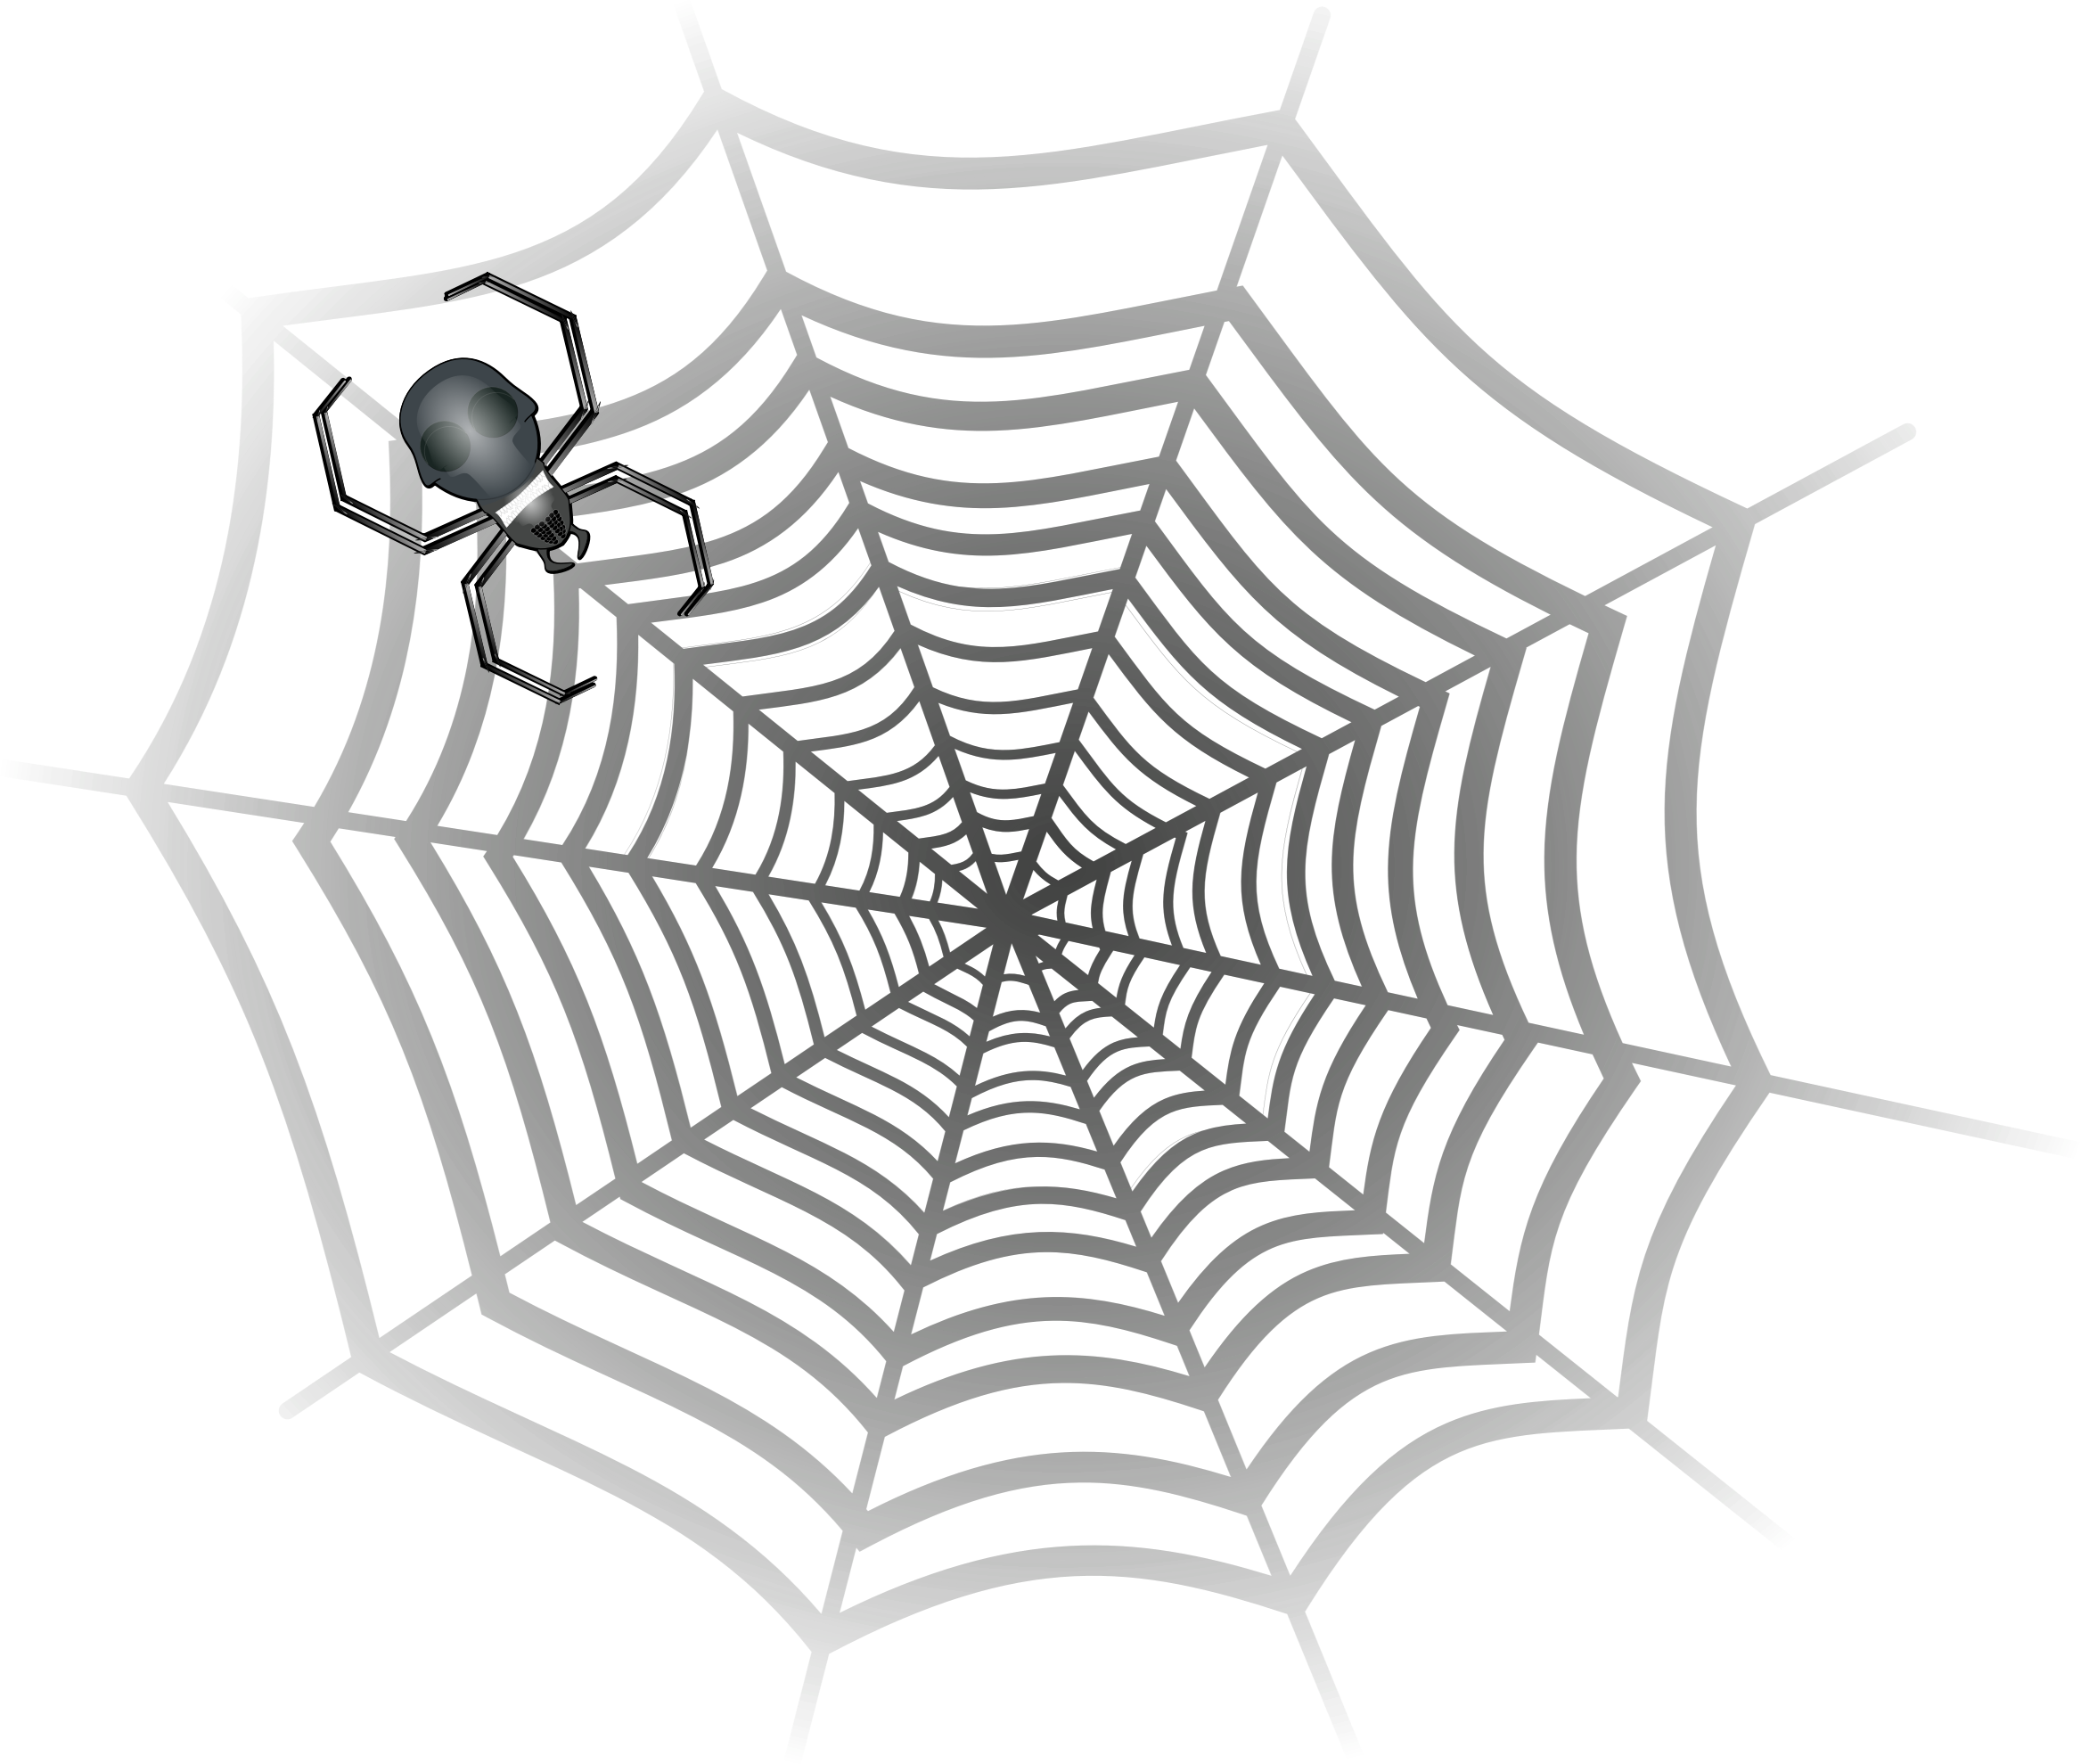 spider web by drunken_duck